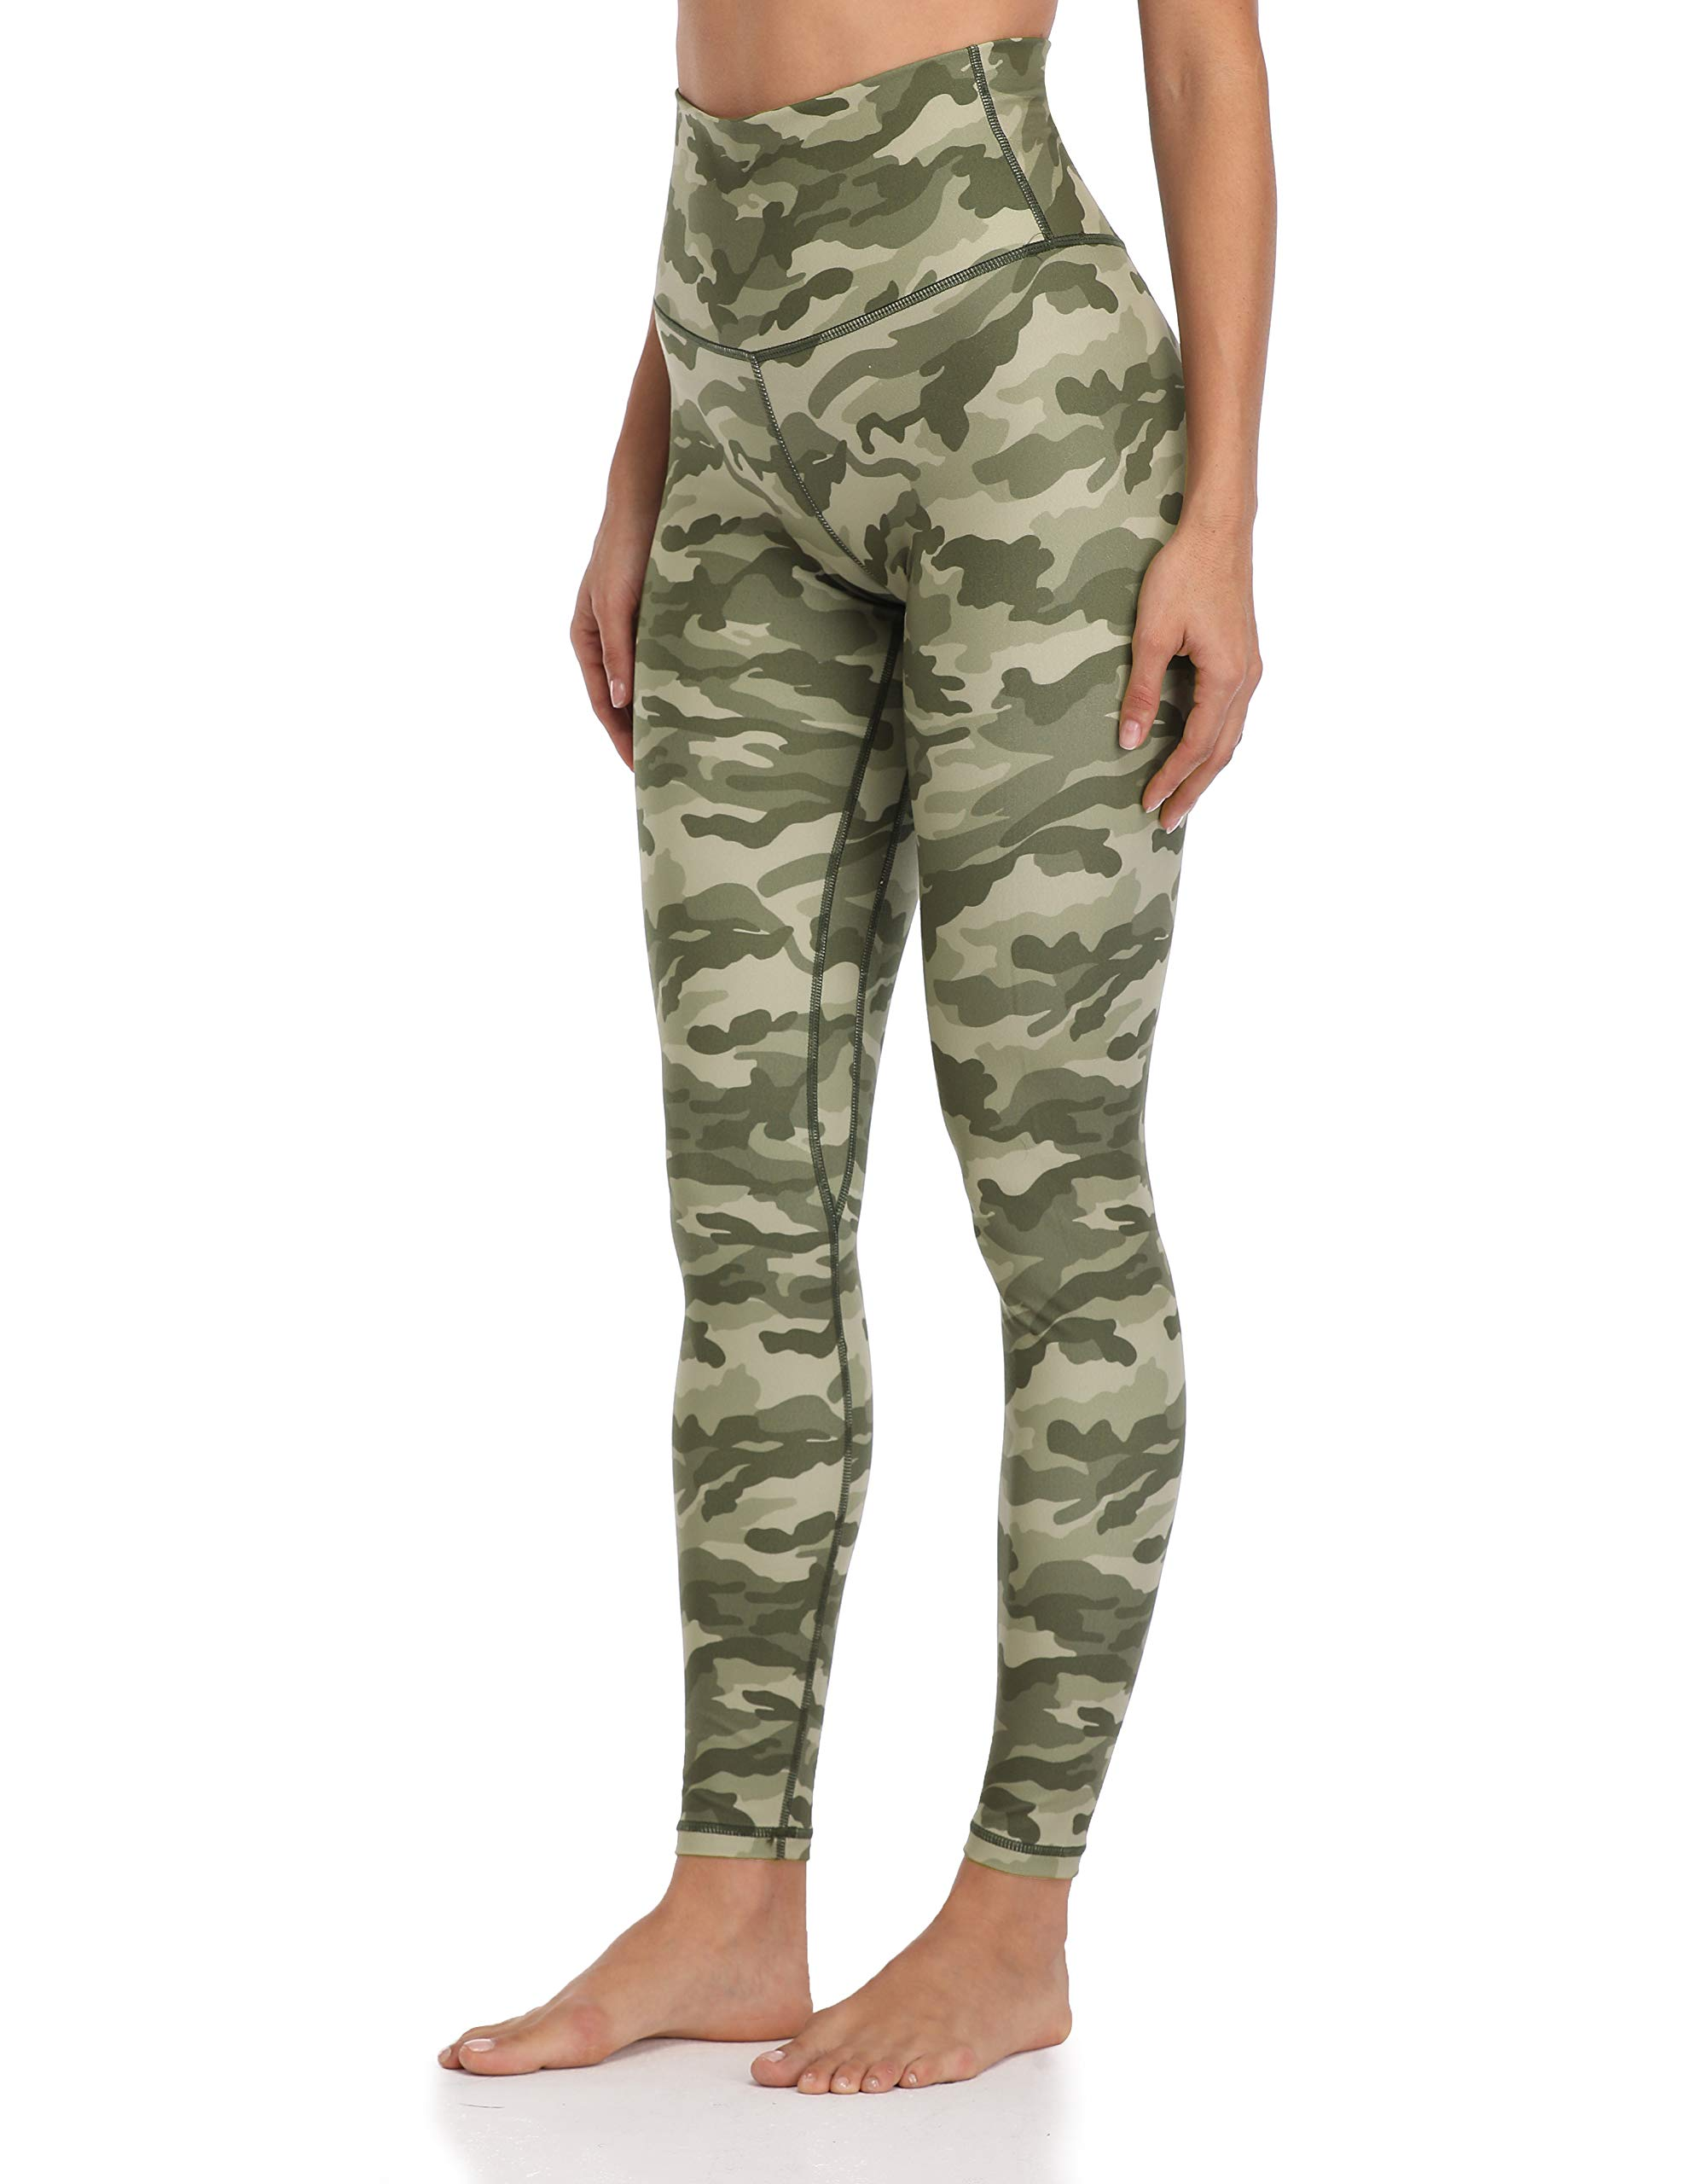 Colorfulkoala Women's High Waisted Pattern Leggings Full-Length Yoga Pants (XS, Green & Beige Mixed Camo) by Colorfulkoala